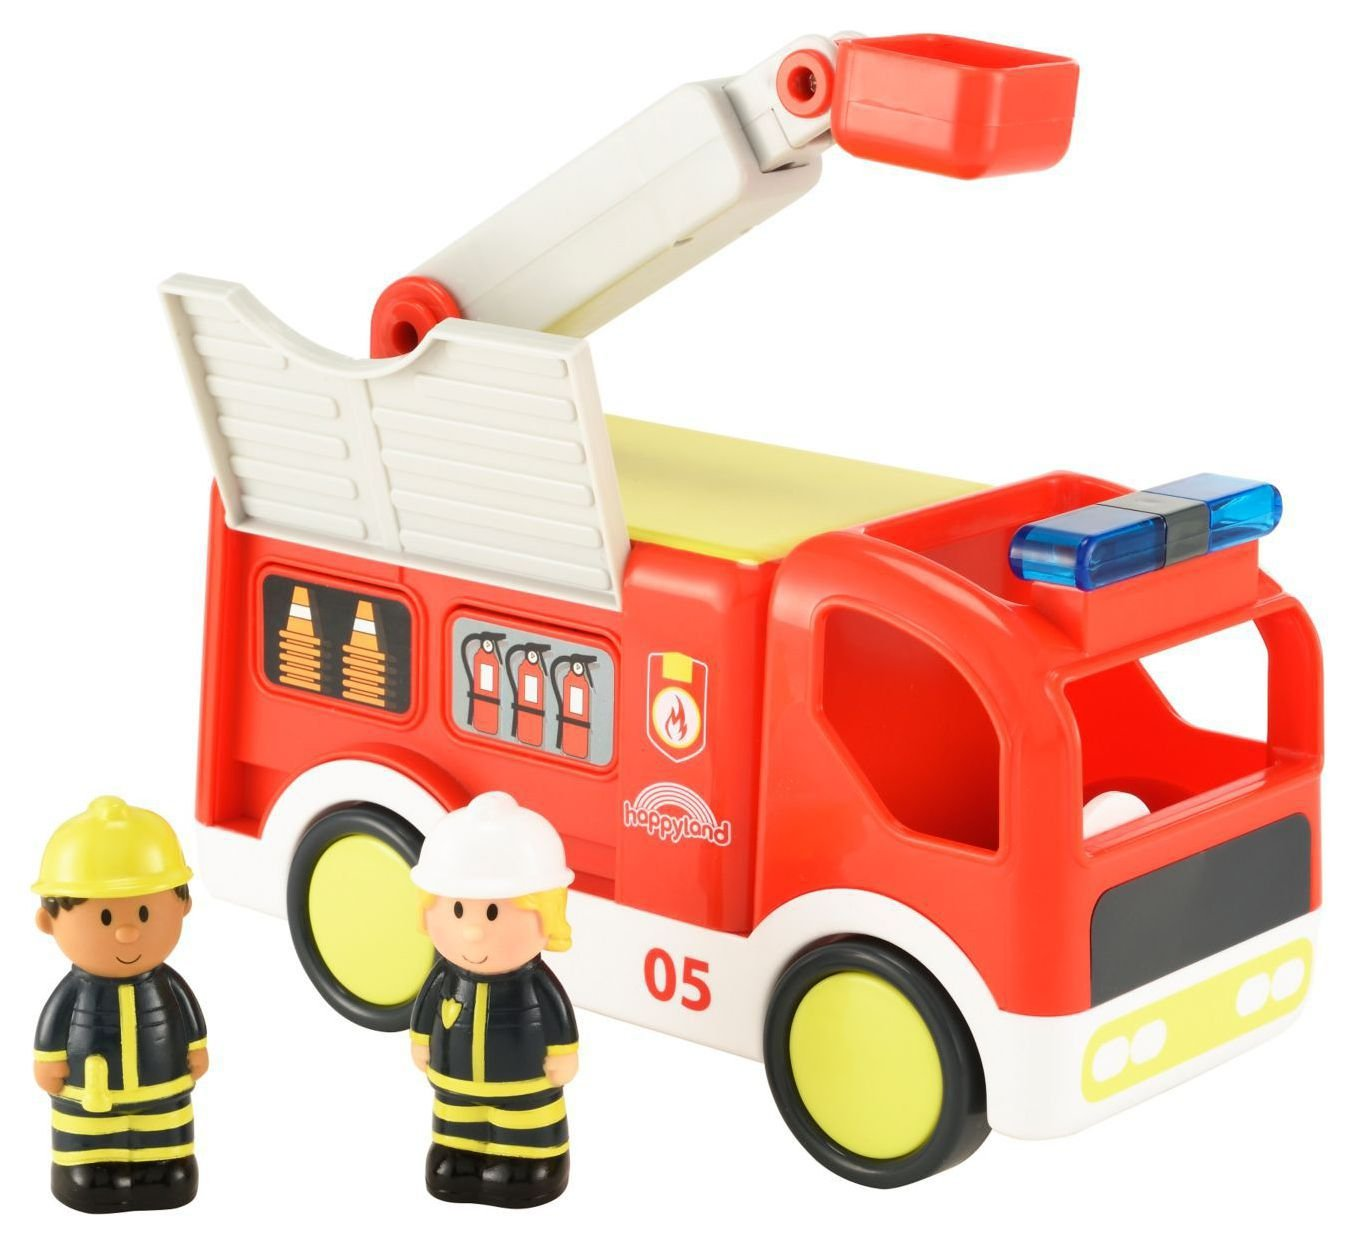 Happyland Lights and Sounds Fire Engine.